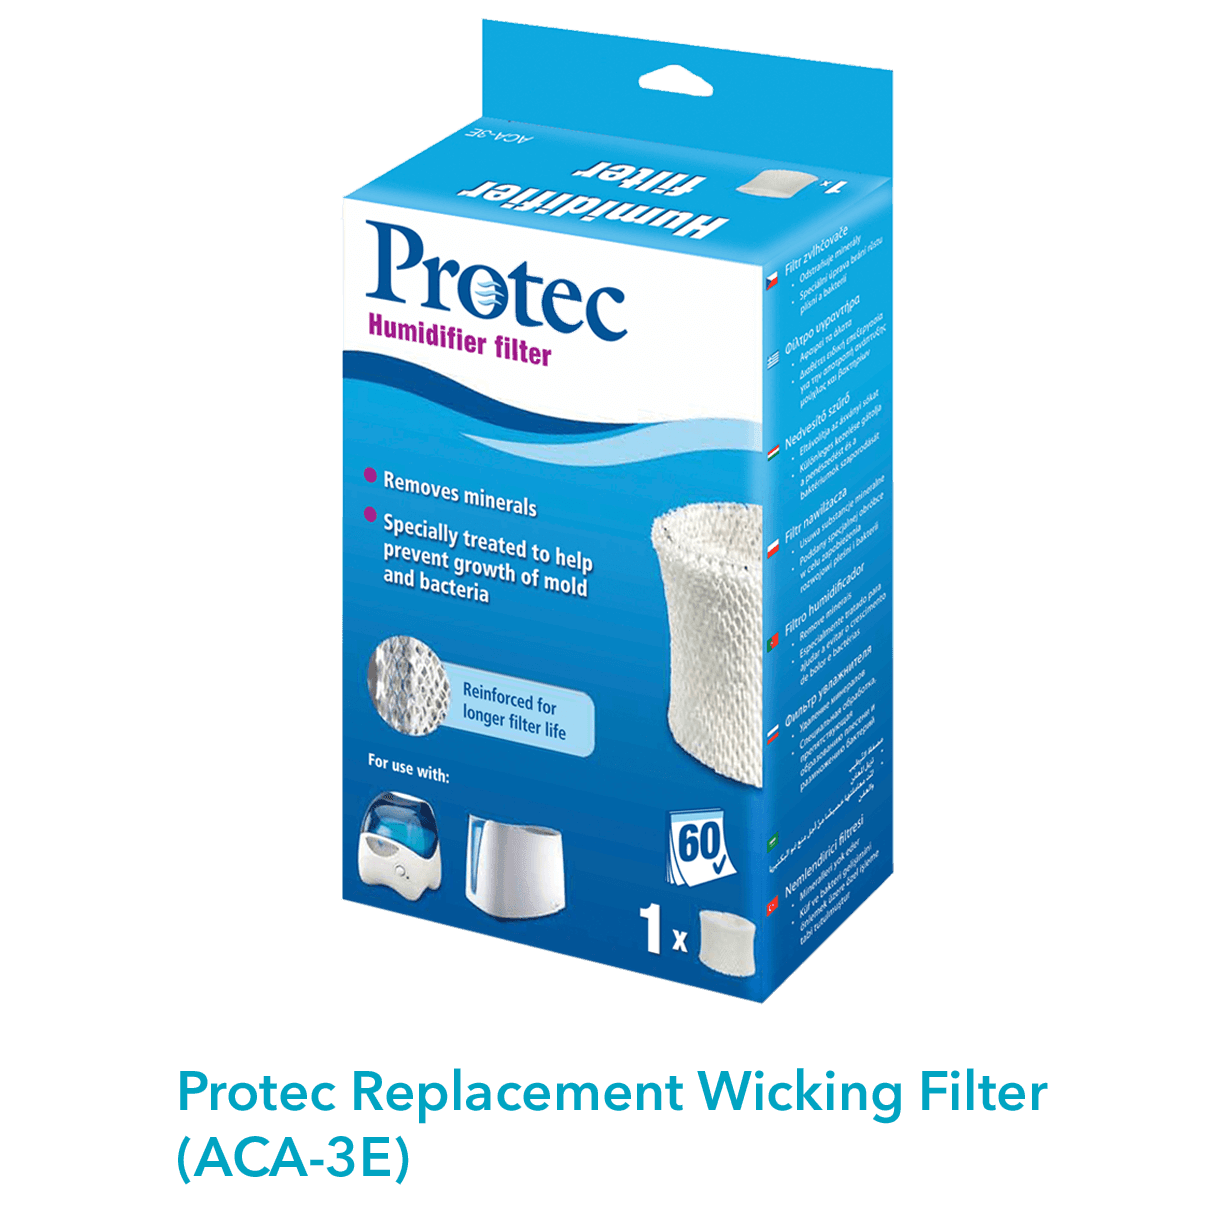 Protec replacement wicking filter